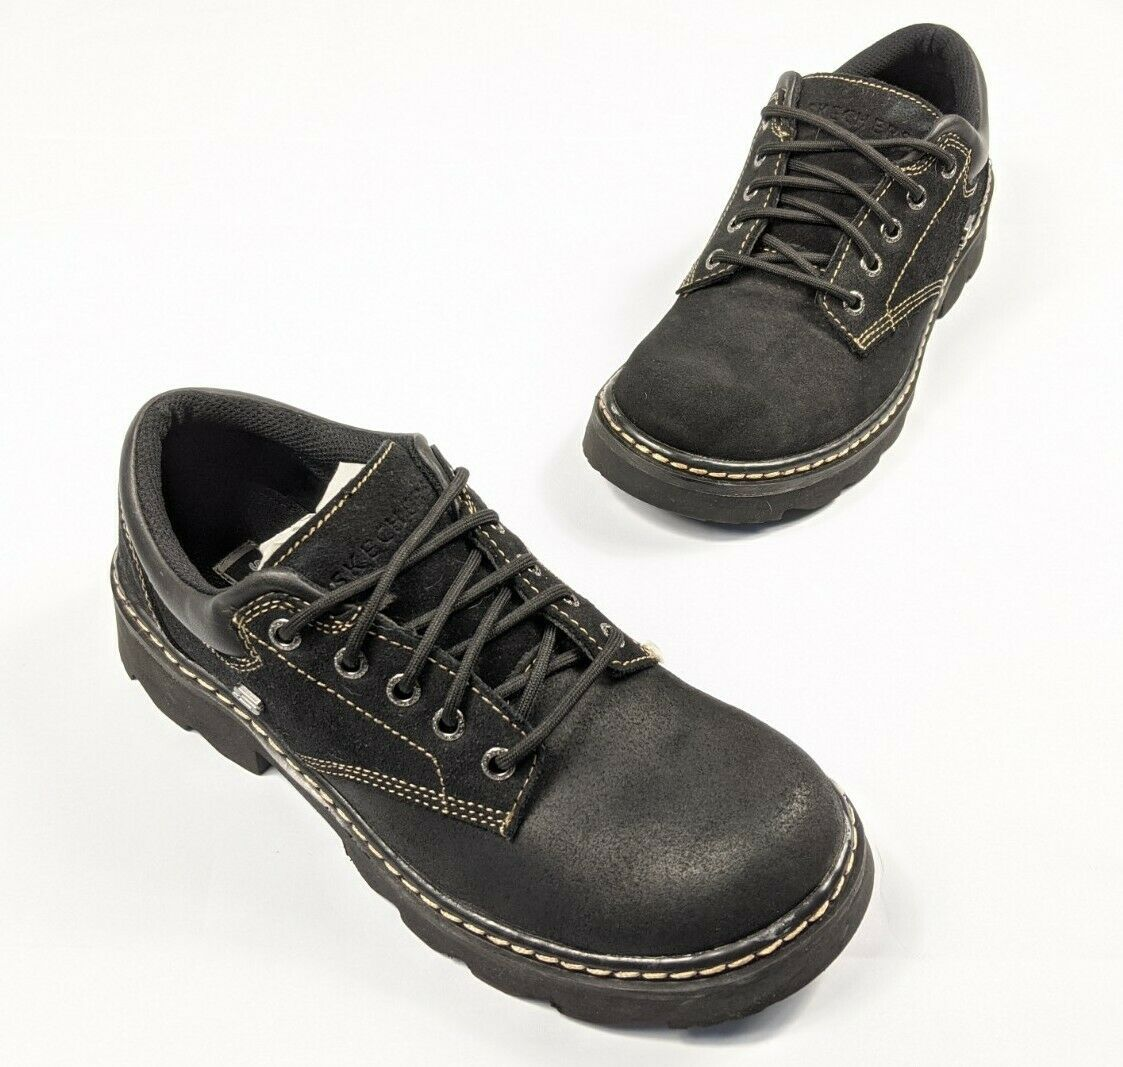 Sketchers Black Leather Lace Up Hiking